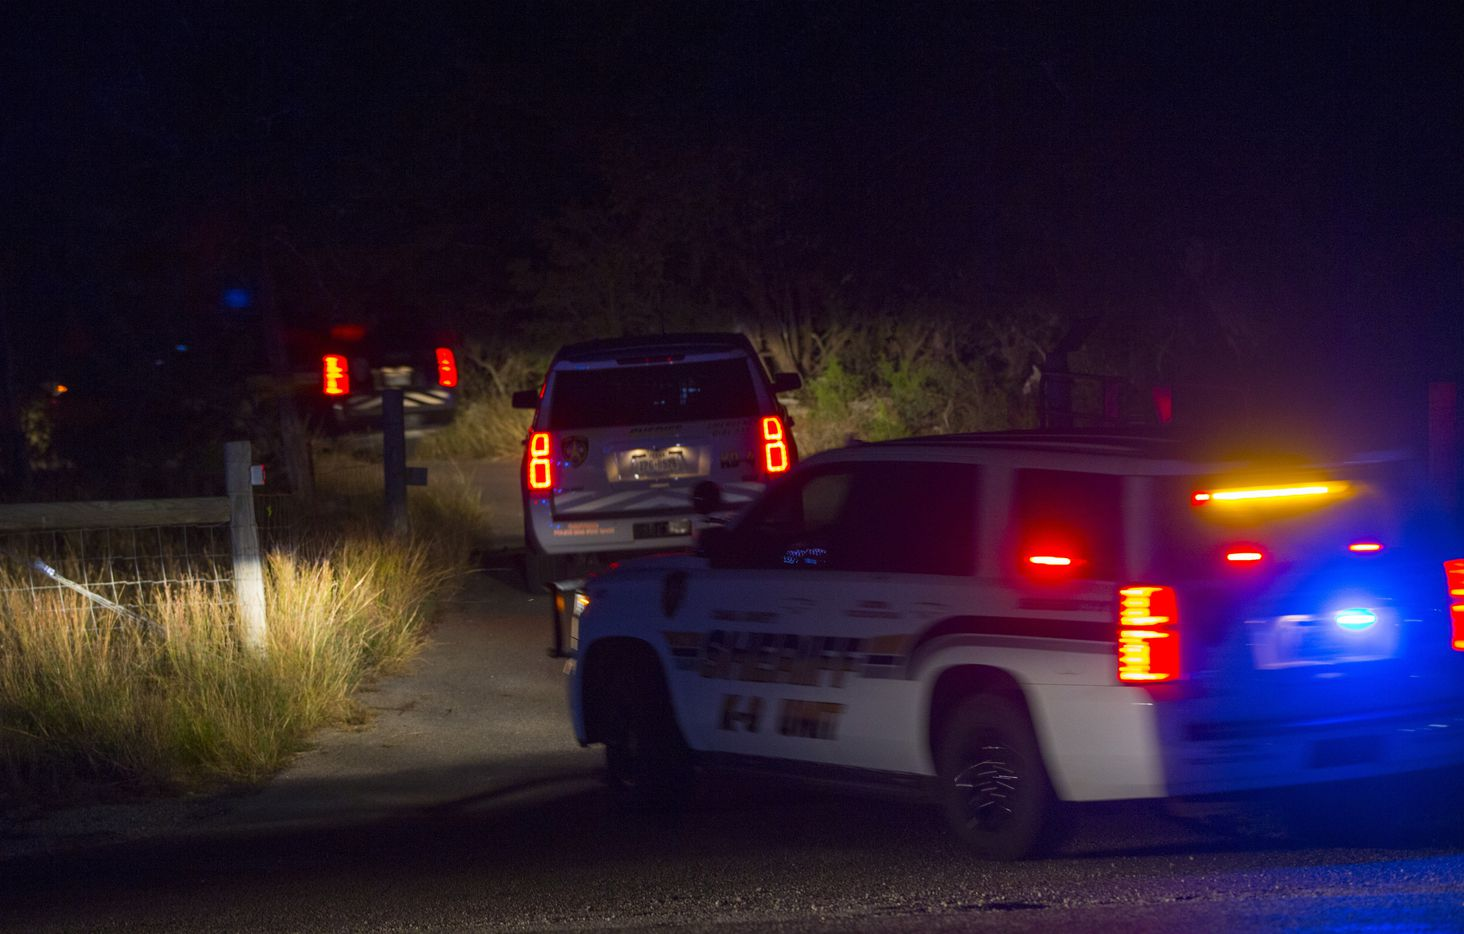 Law enforcement officials enter the property of Devin P. Kelley on November 5, 2017 near New Braunfels, Texas. According to reports, Kelley, 26, entered a church during a service and opened fire, killing 26 people and injuring at least 20.